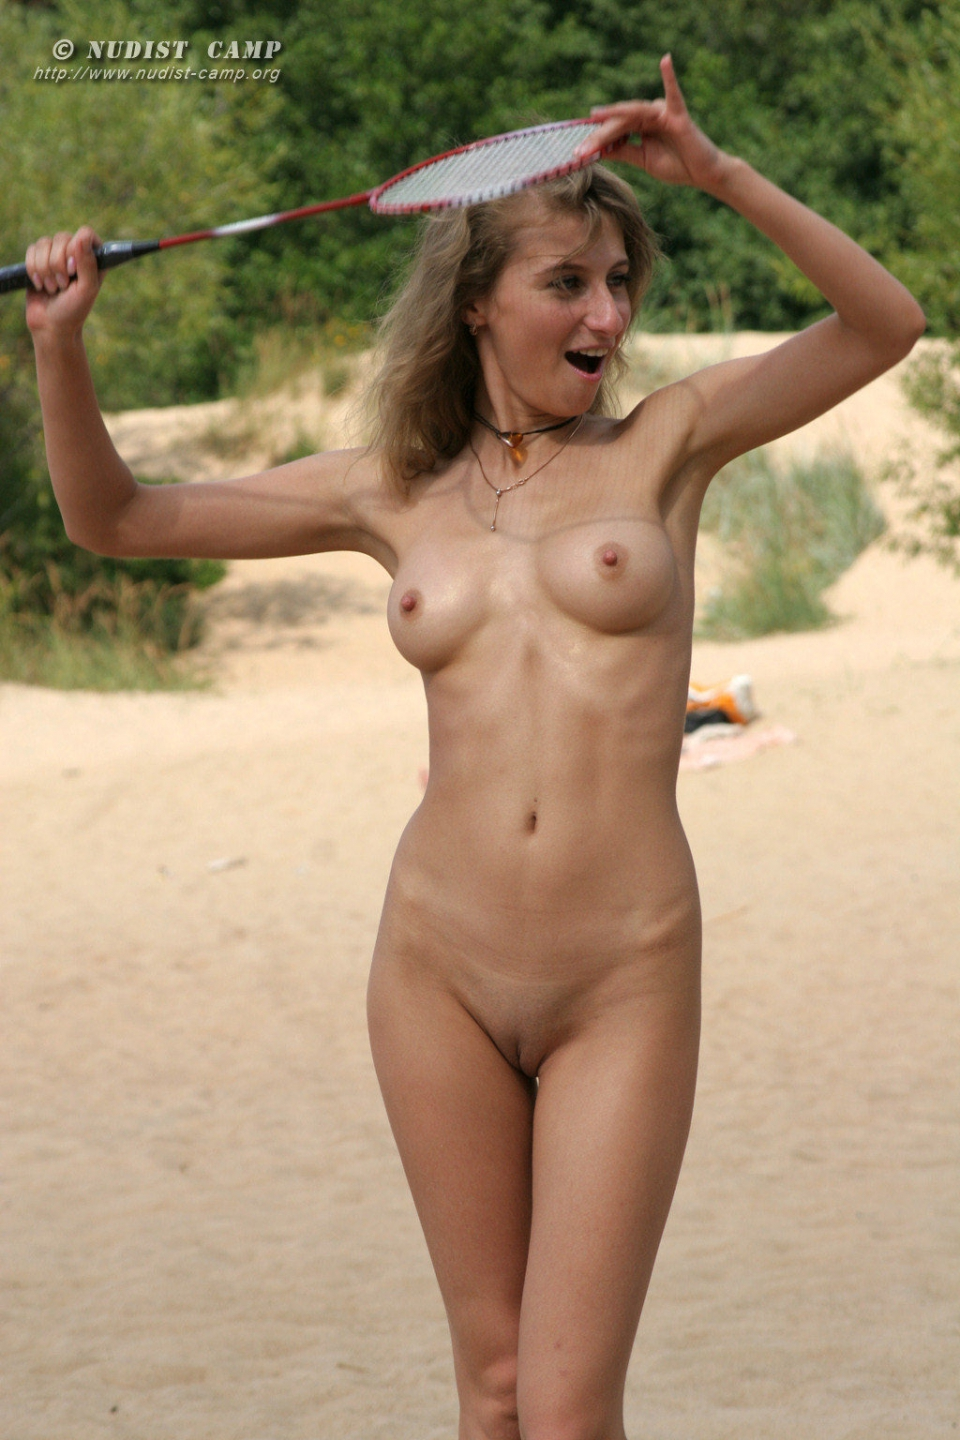 Young nudists camp full resolution image: http://justimg.com/young-nudists-camp.html